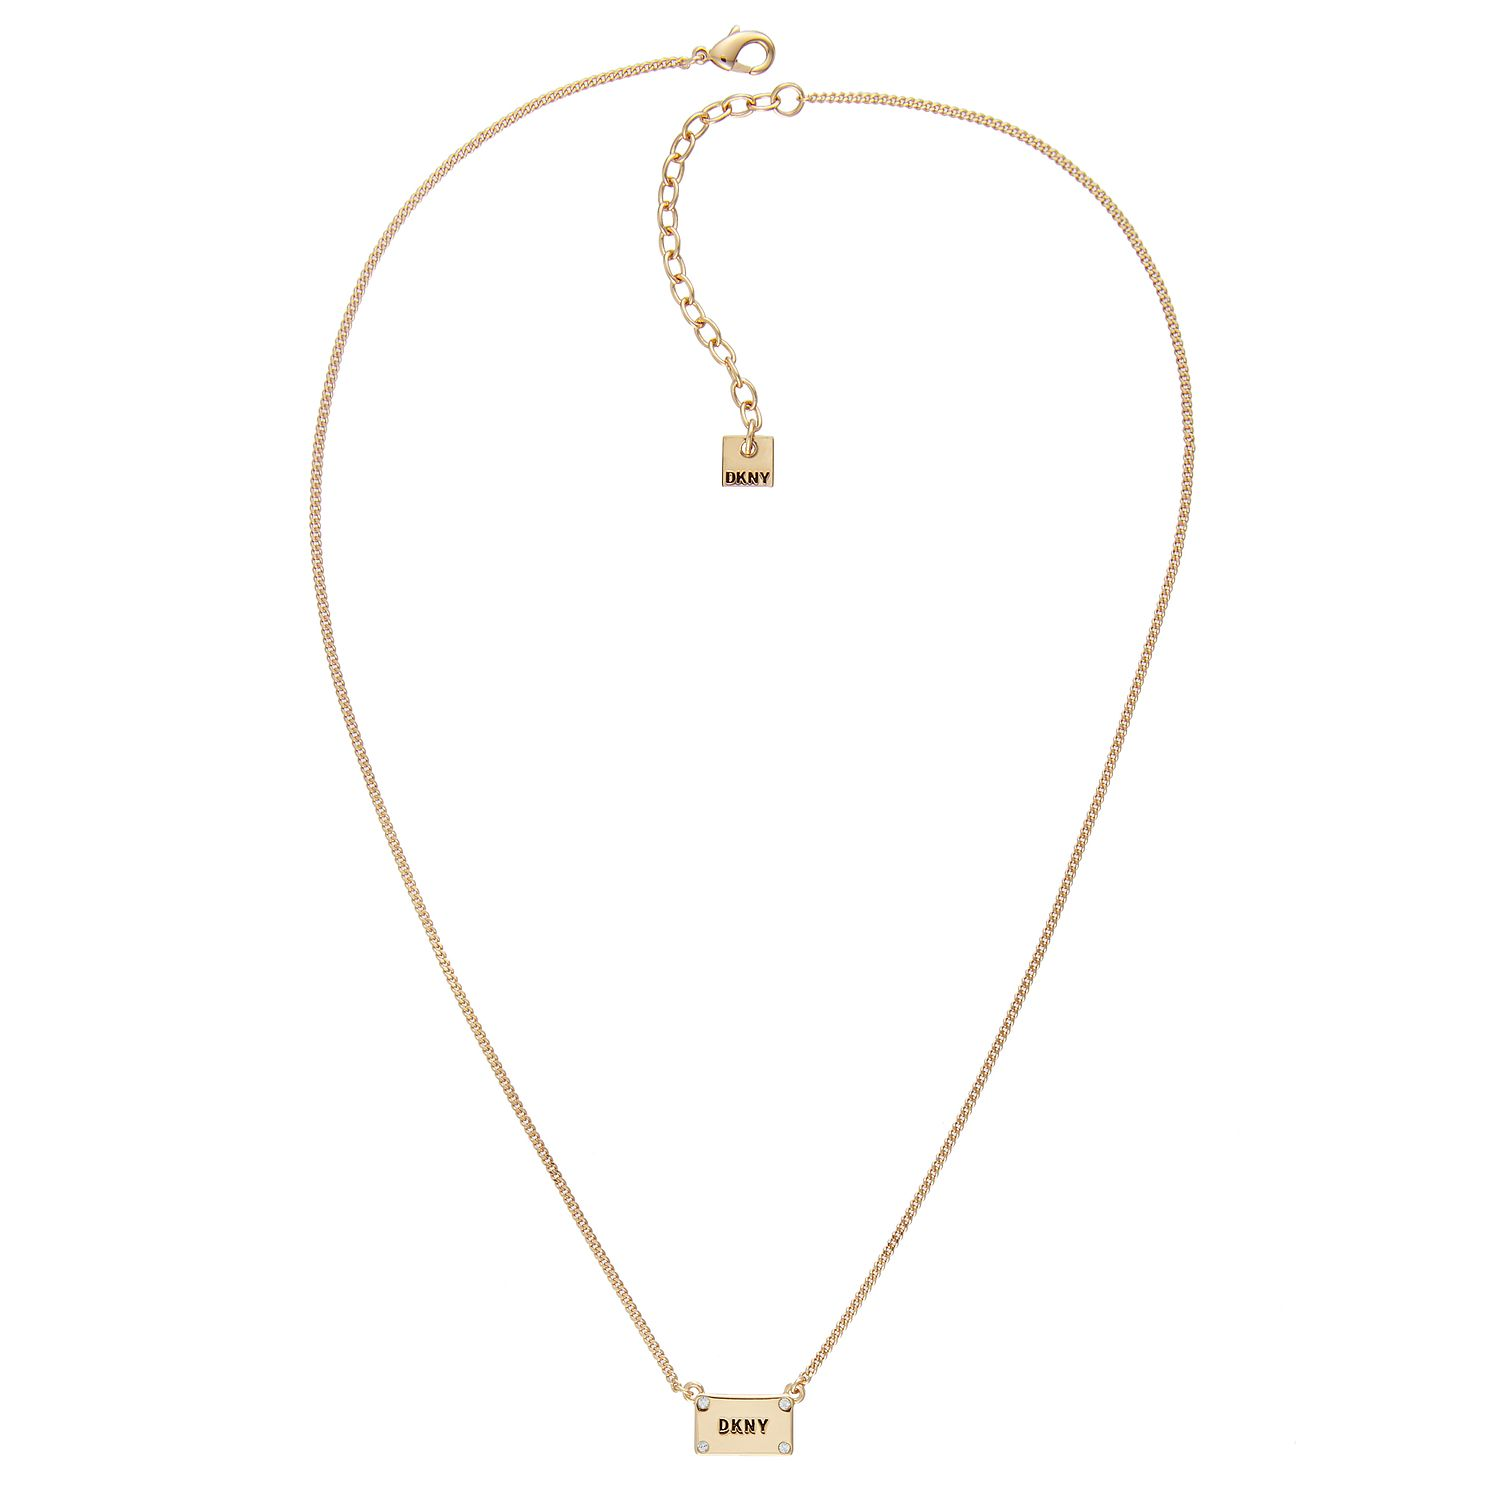 DKNY Logo Plackard Yellow Gold Plated Crystal Necklace - Product number 5888956